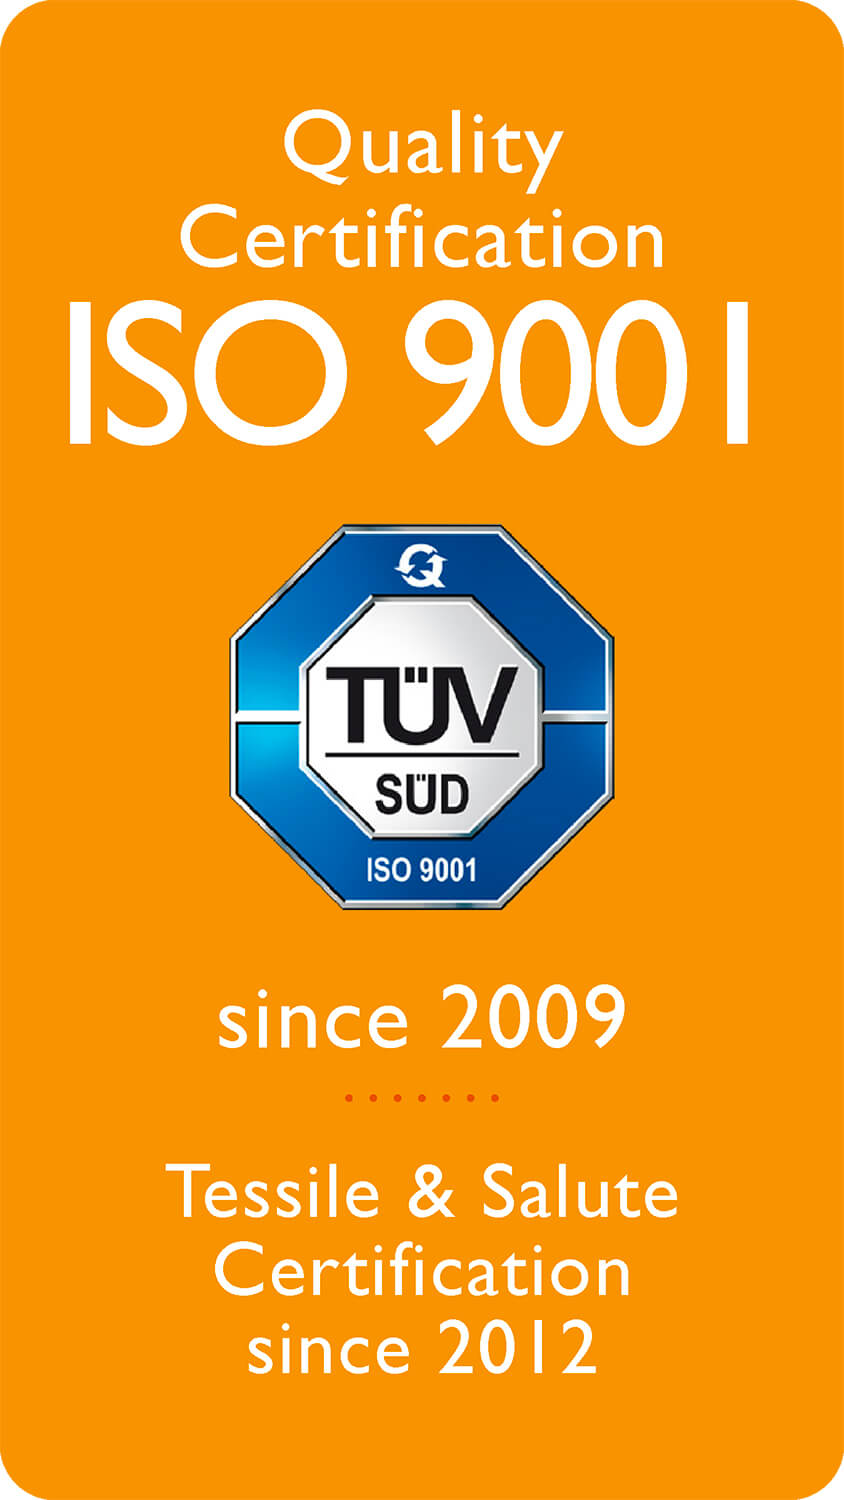 Quality Certification ISO 9001 Since 2009 Tessile & Salute Certification since 2012